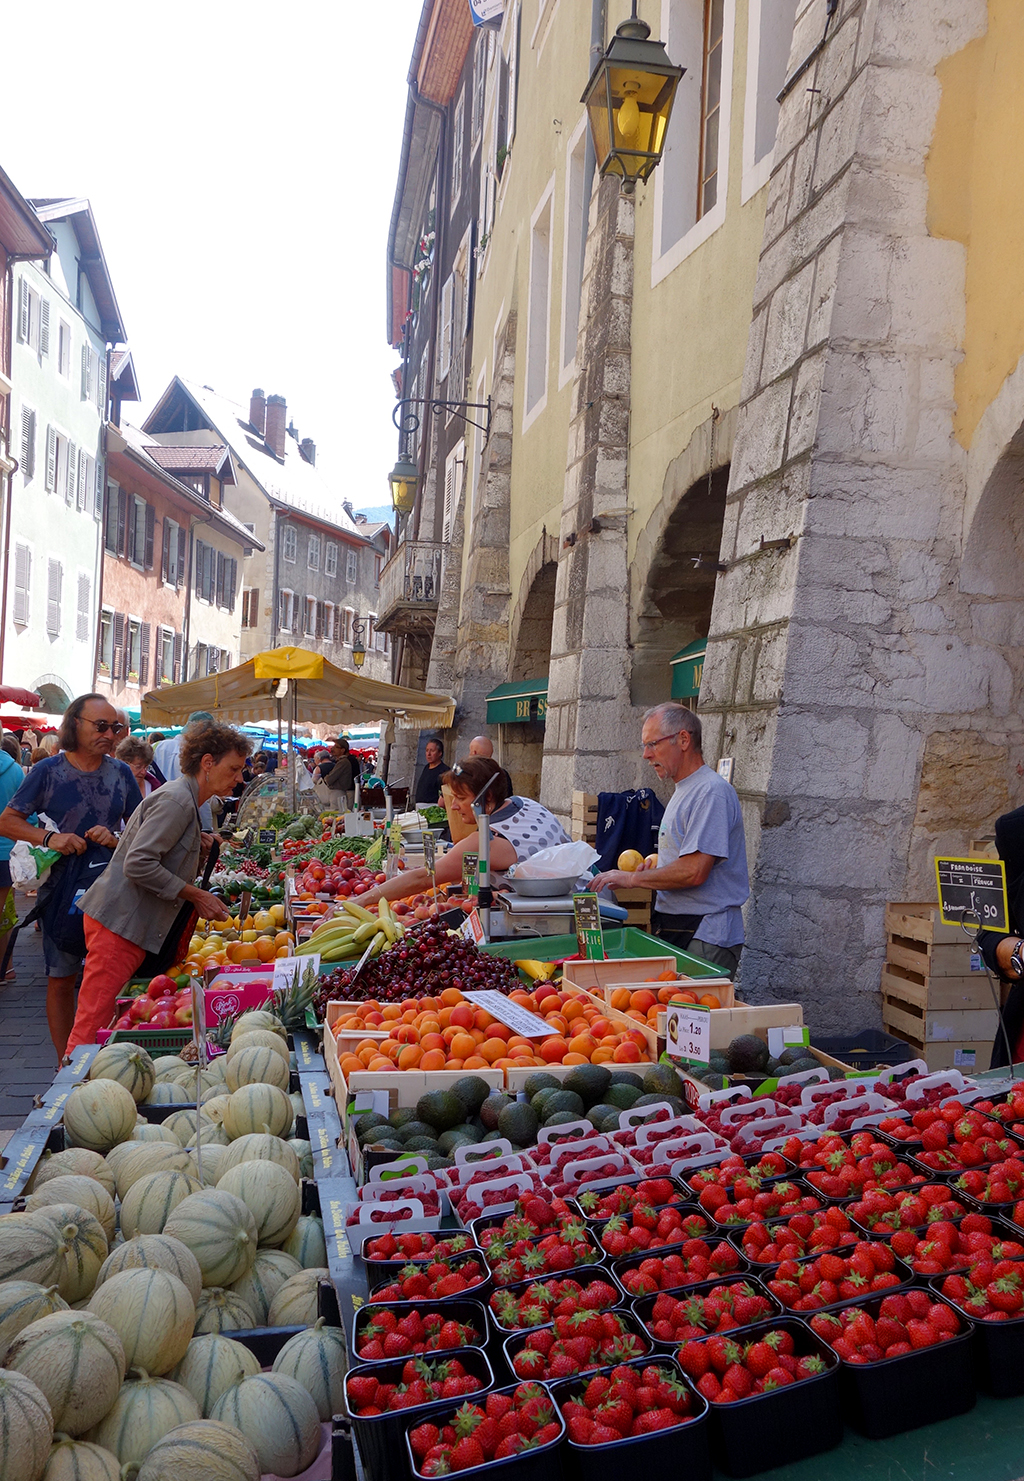 Fruit vendors in Annecy